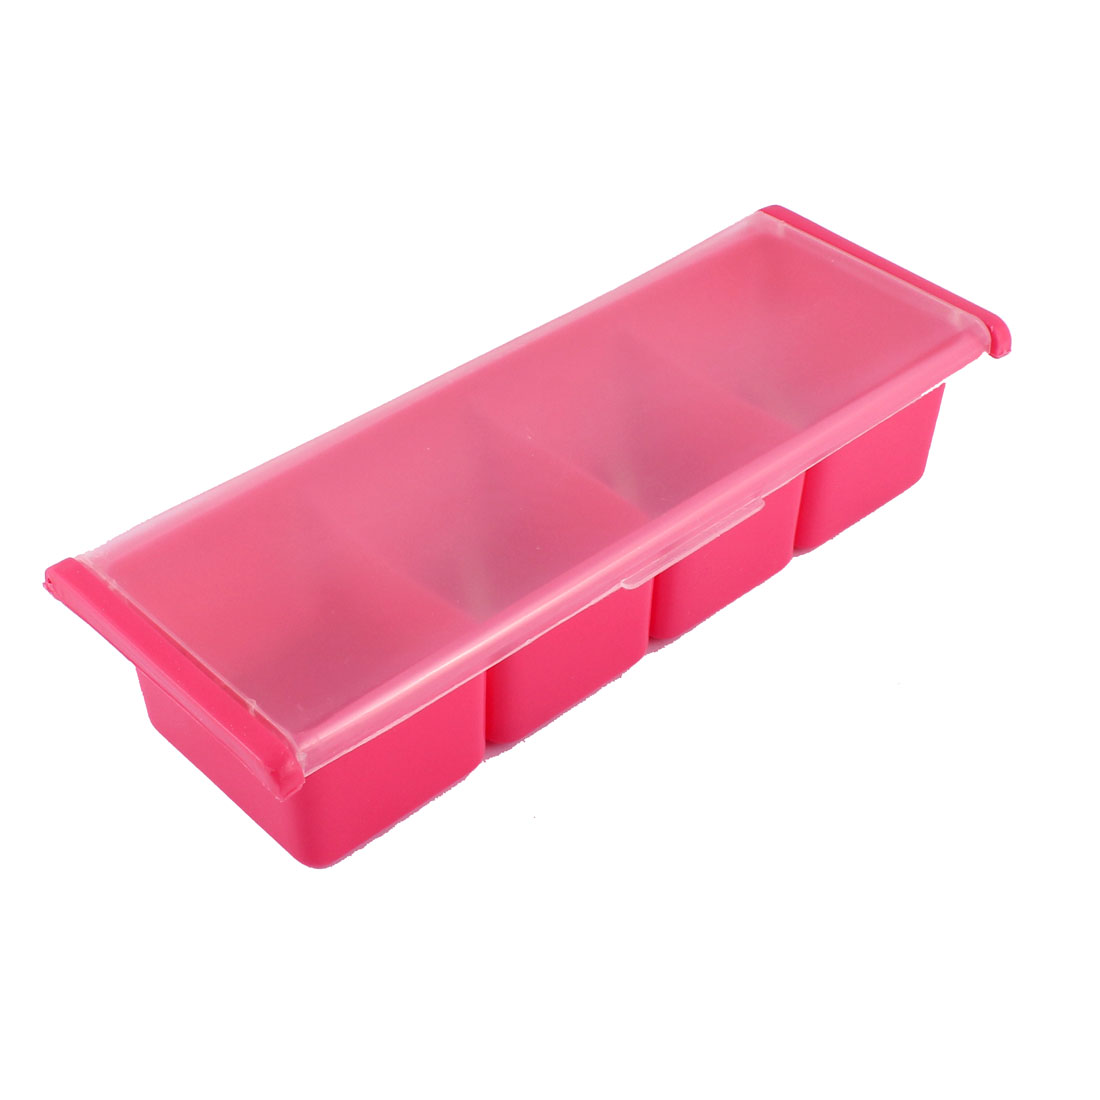 Bar Kitchen 4 Compartments Condiment Holder Container Dispenser Tray Red